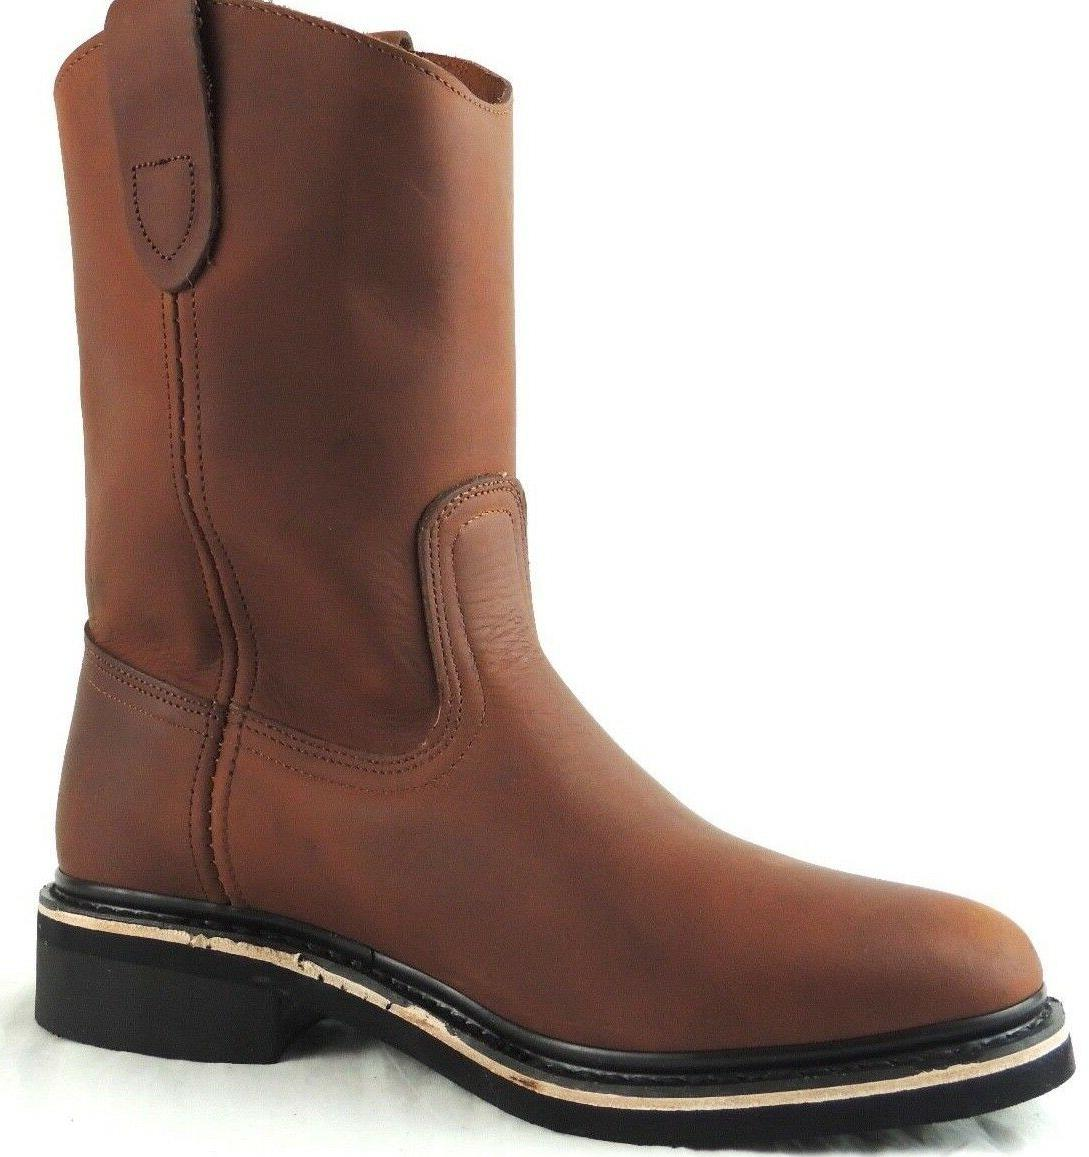 MEN'S WORK BOOTS GENUINE LEATHER BOTAS COWBOY PULL ON